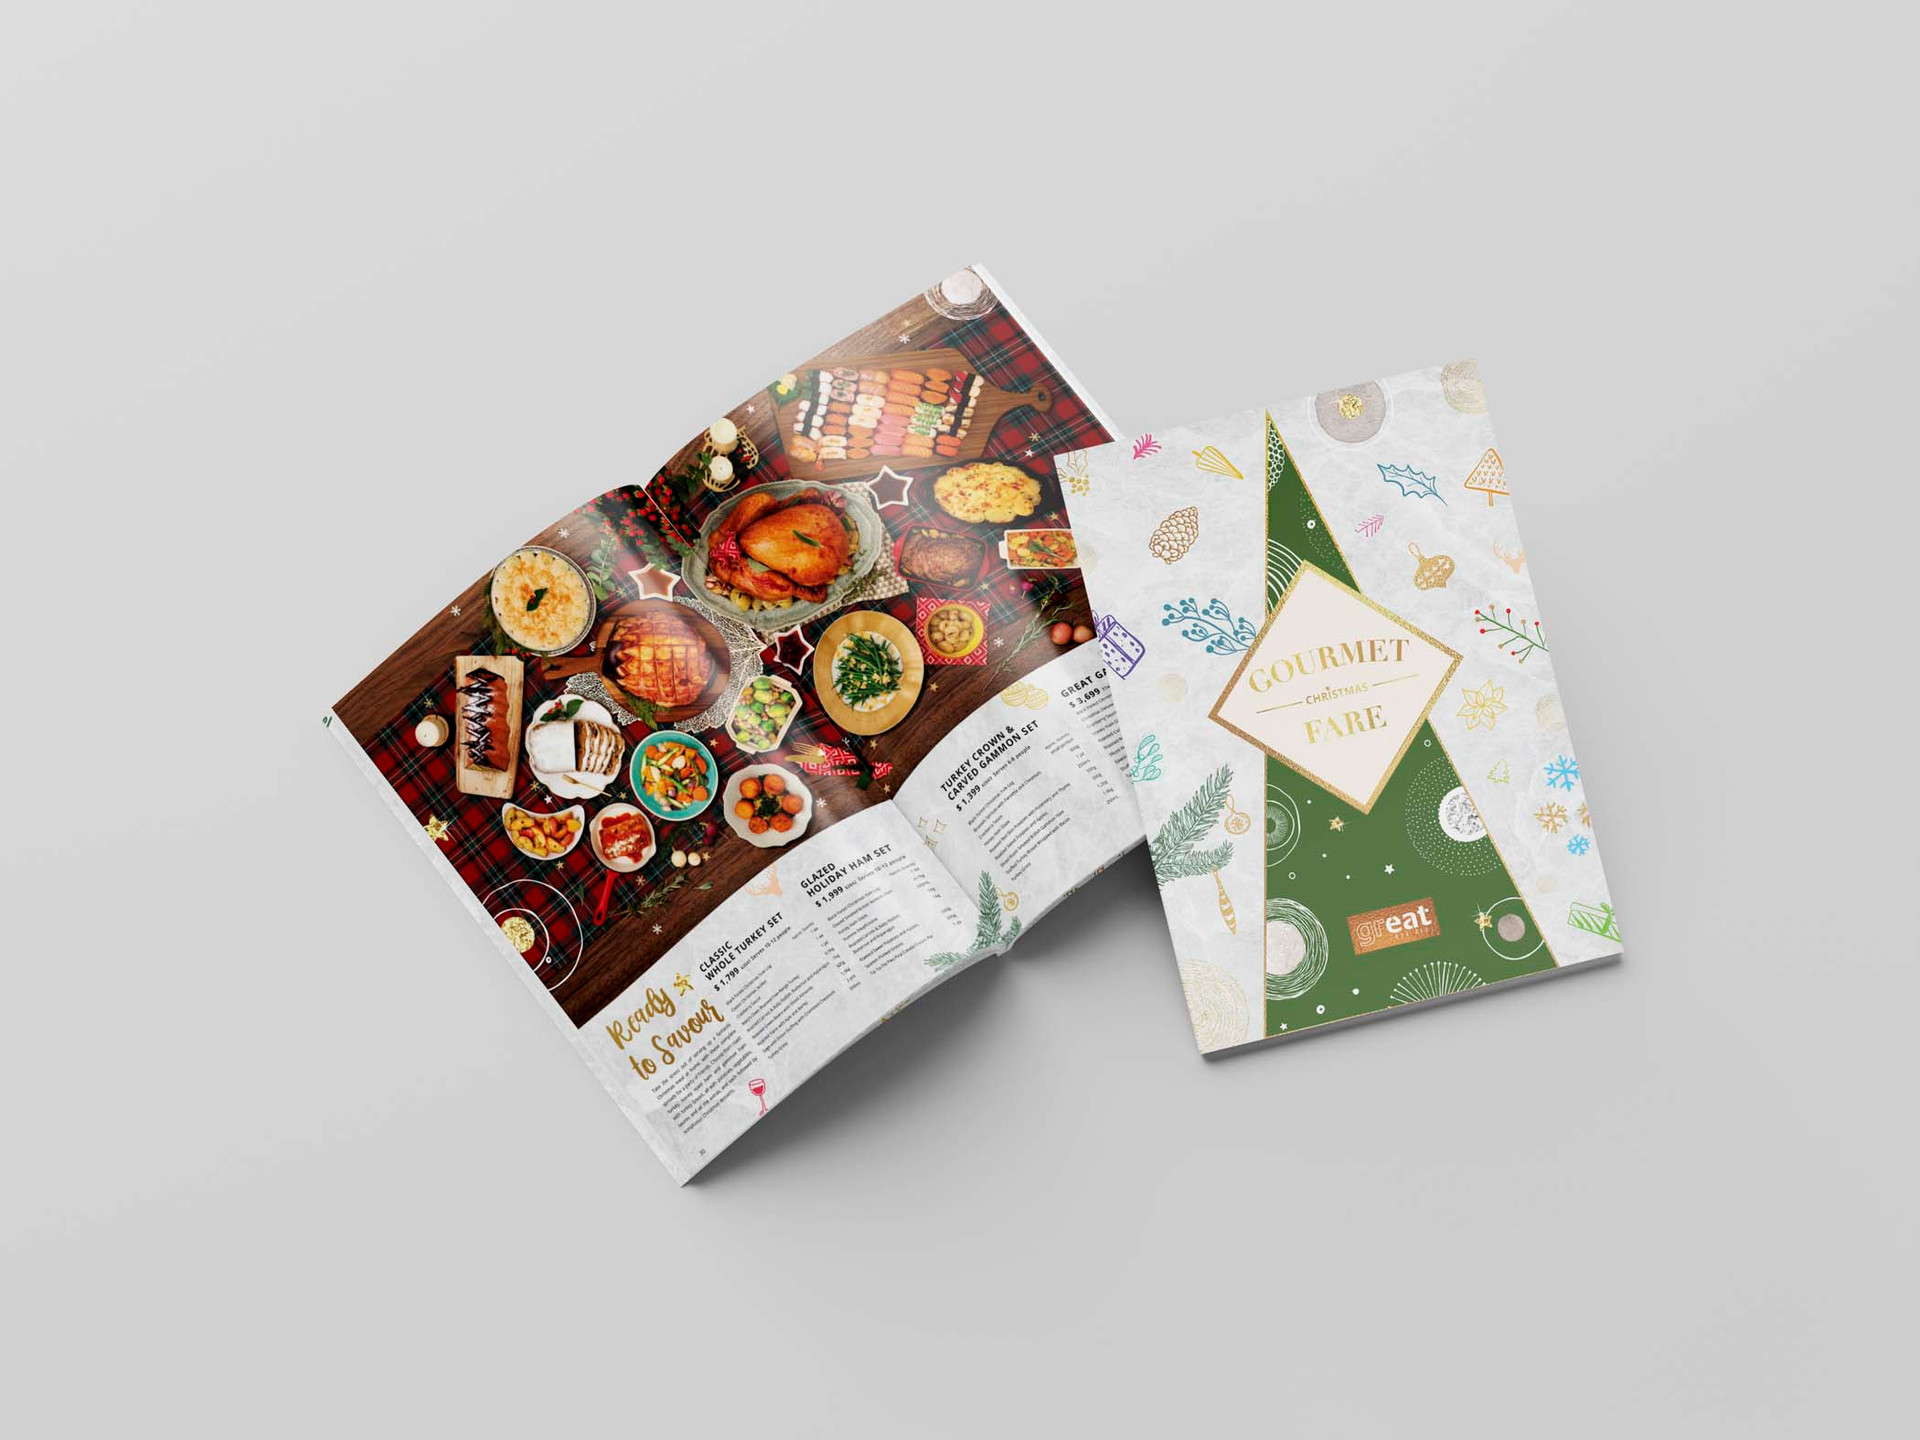 Great-Food-Hall-Catalogue-P.30-31-and-co